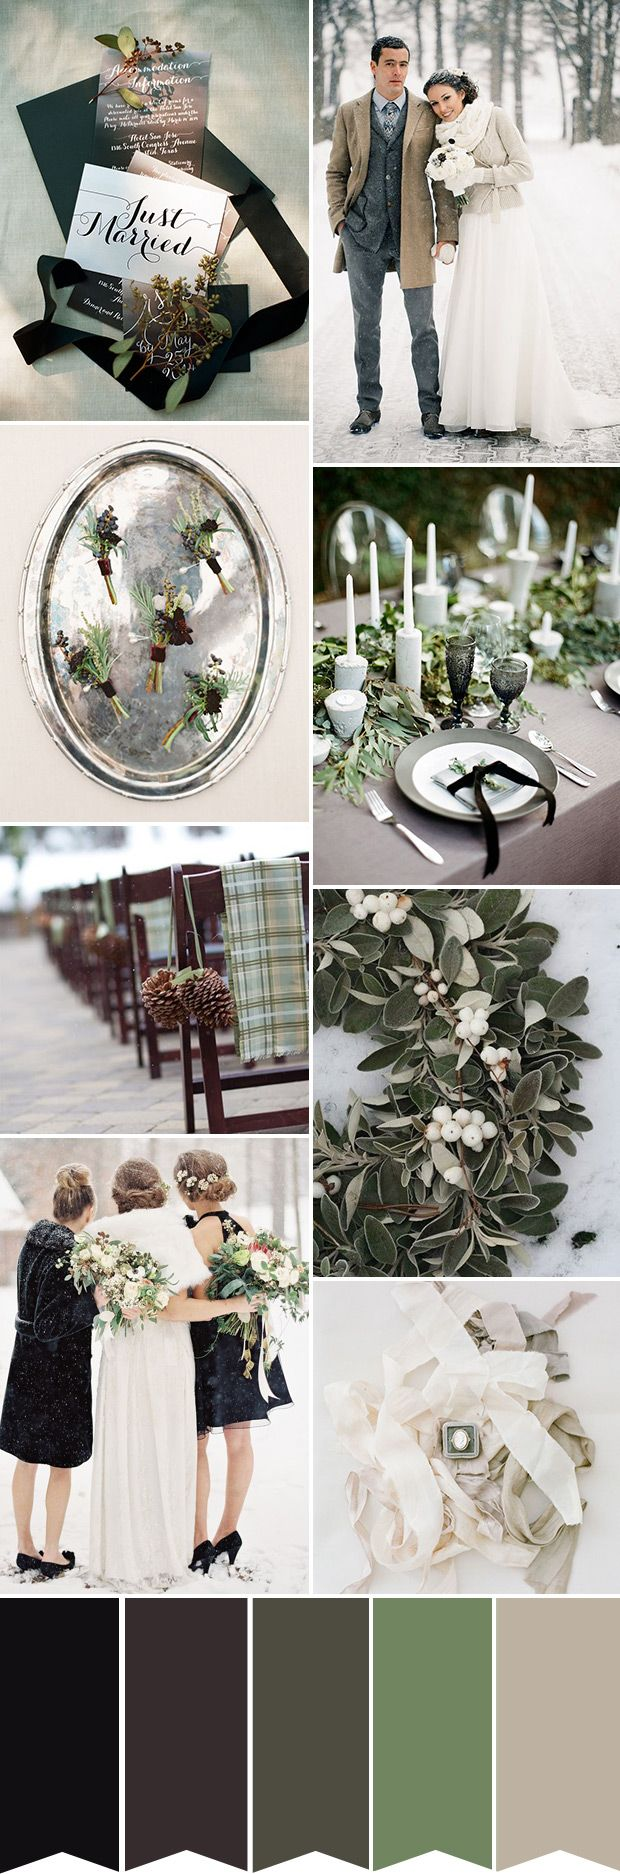 Rustic Glam in Winter - the Perfect Classic Wedding